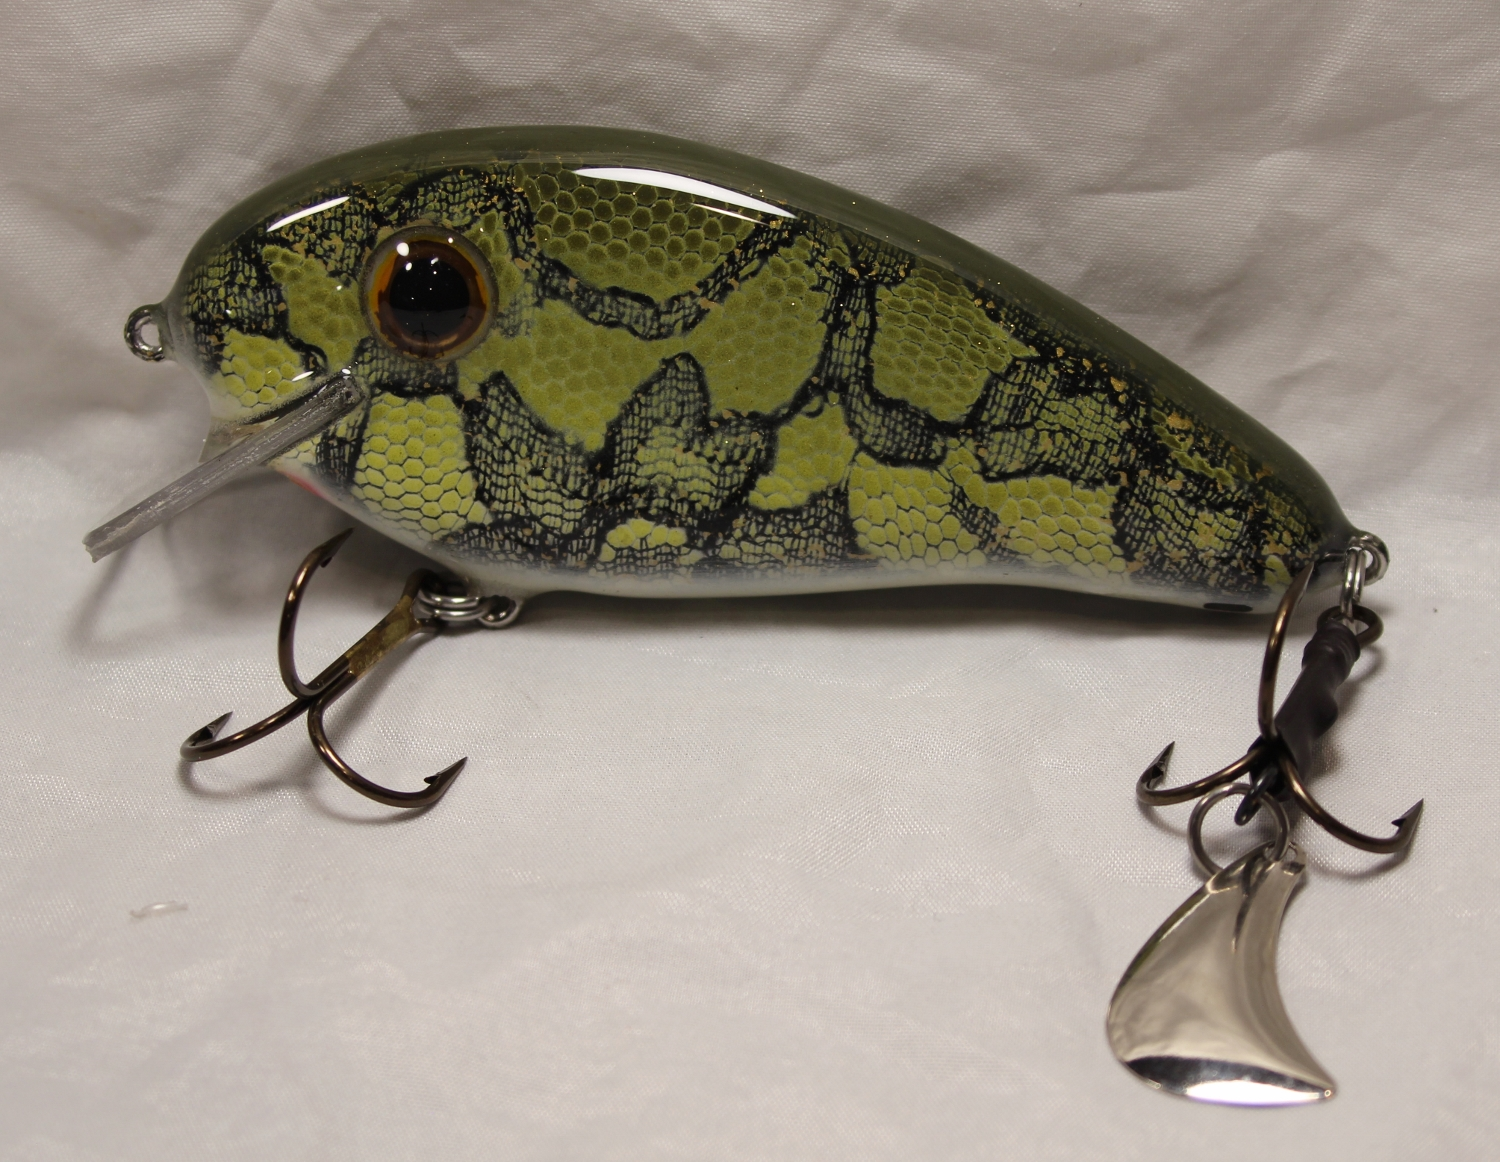 """Pearson Plugs 5"""" Rattling Super Shallow Shad with Hatchet Trailer, Lake Of The Woods Walleye"""